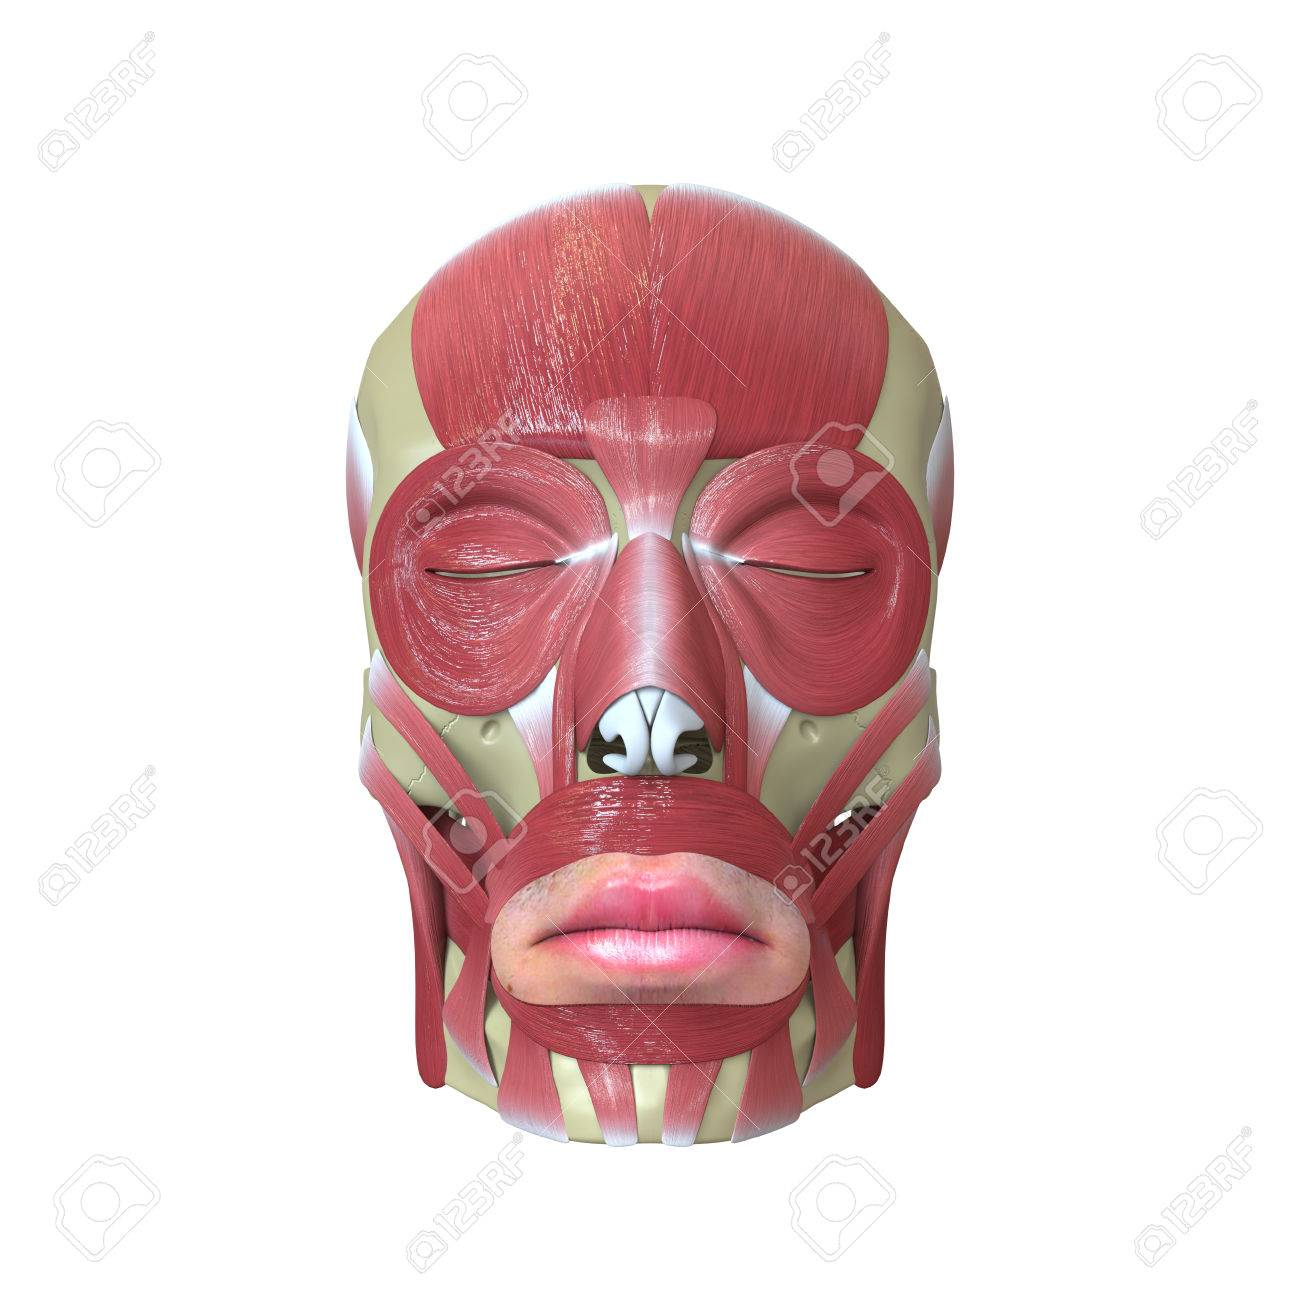 Rendered Human Head With Muscles Stock Photo Picture And Royalty